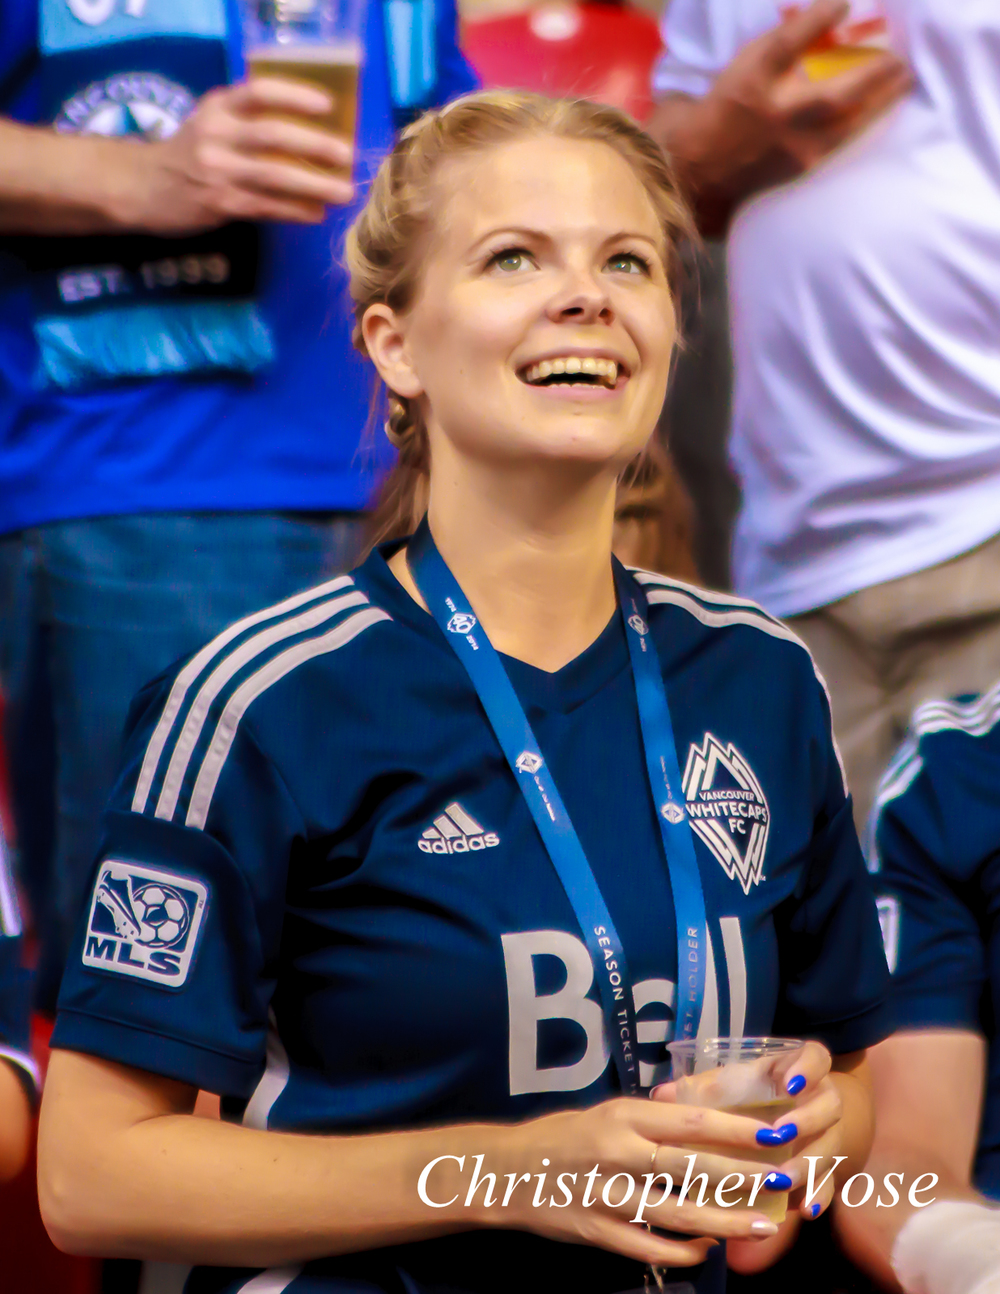 2014-09-06 Vancouver Whitecaps FC Supporter 1.jpg